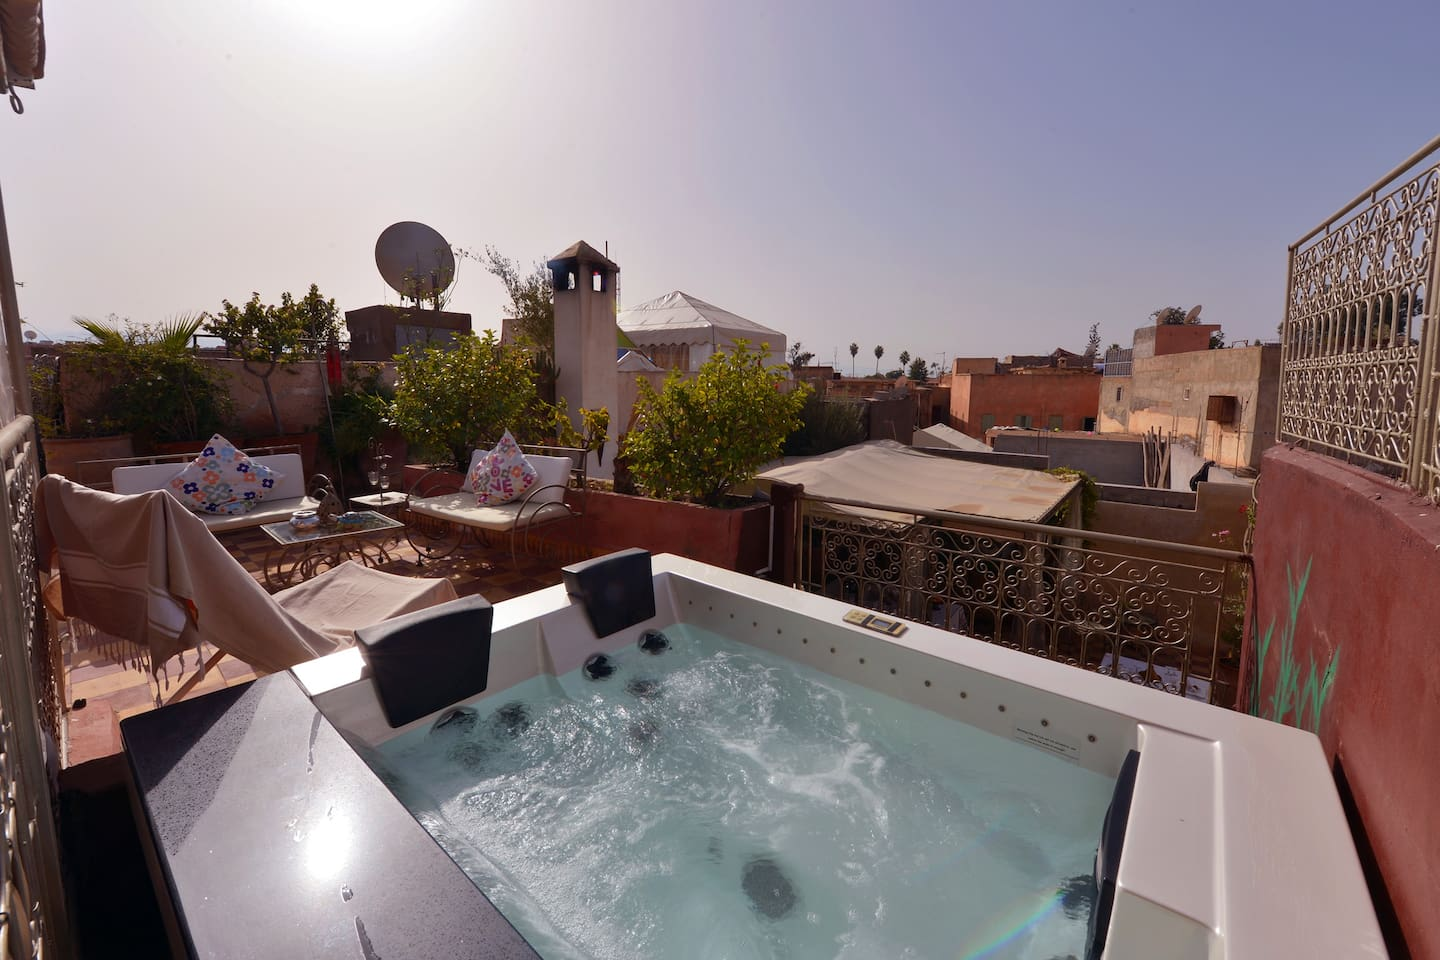 Riad with jacuzzi privatize